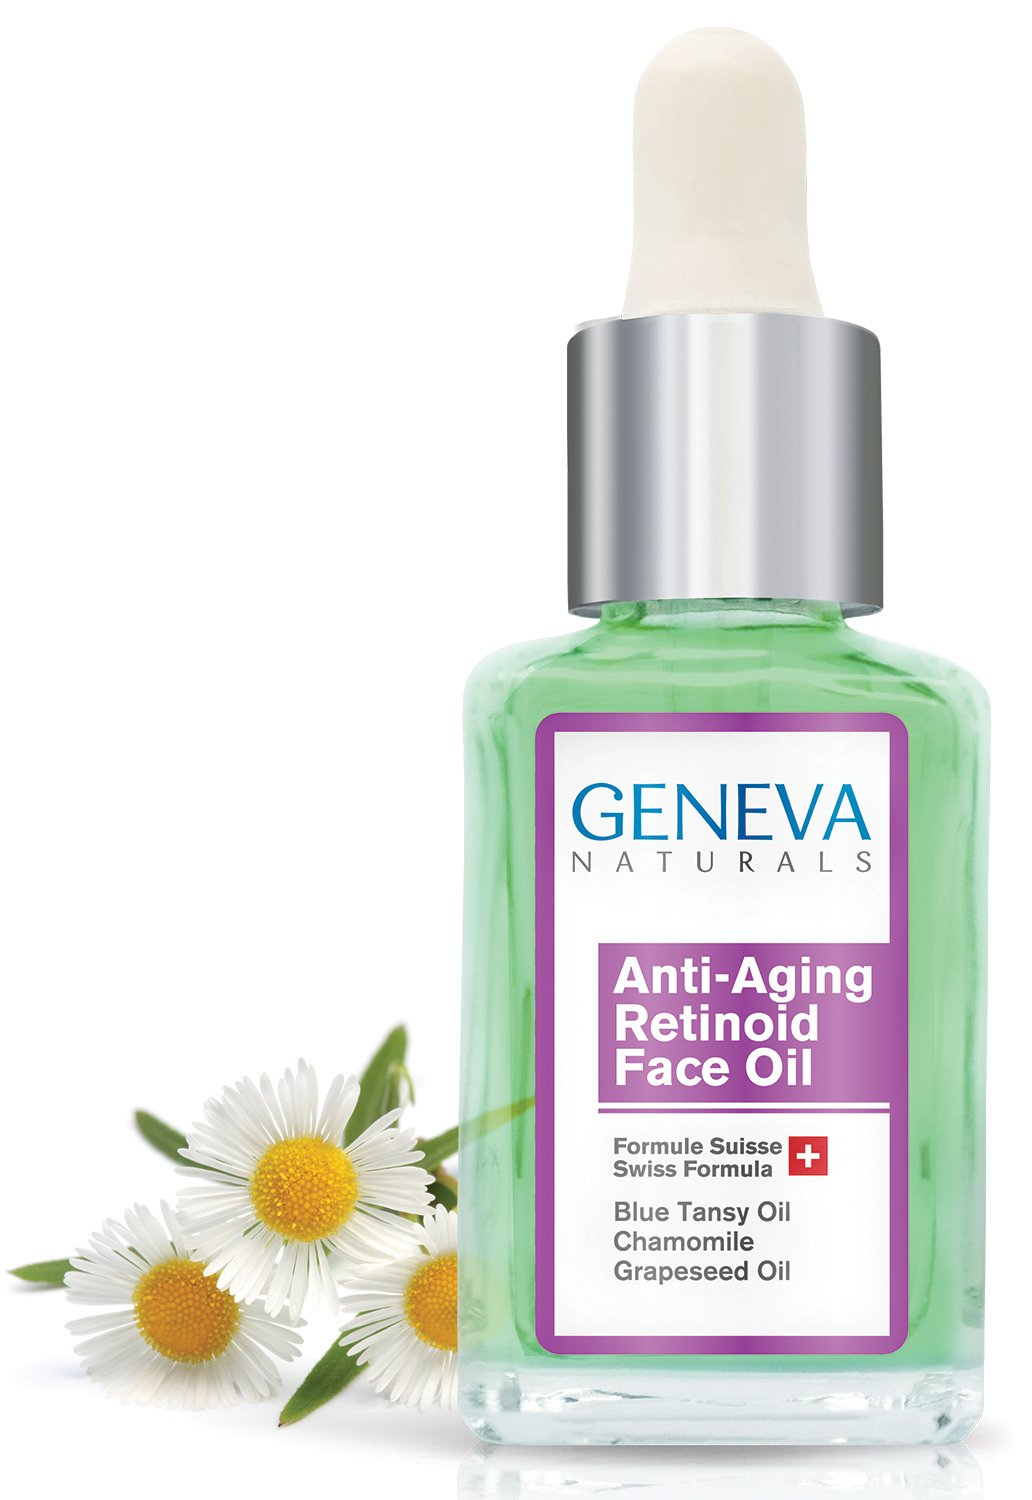 Retinoid Sleeping Night Oil - Natural Swiss Anti-Aging Formula with Blue Tansy Oil, Chamomile, and Grapeseed Oil for Men & Women - 1oz Geneva Naturals